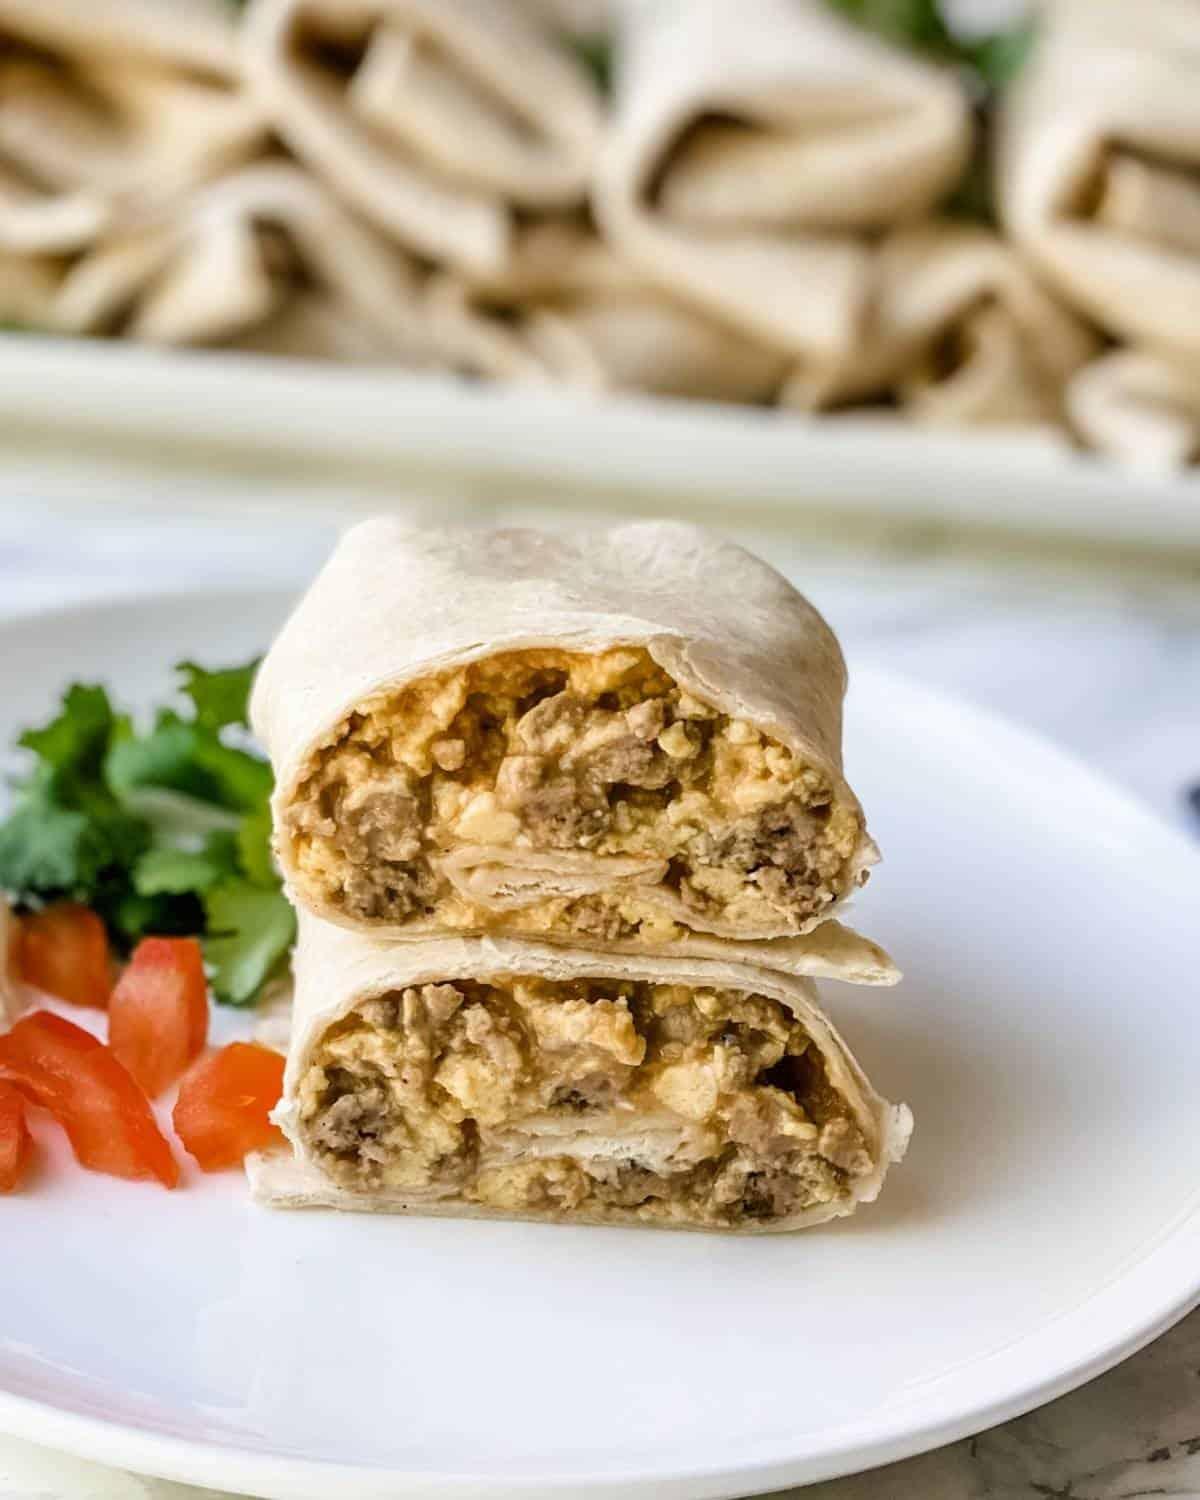 freezer burritos with sausage and cheese on a plate.